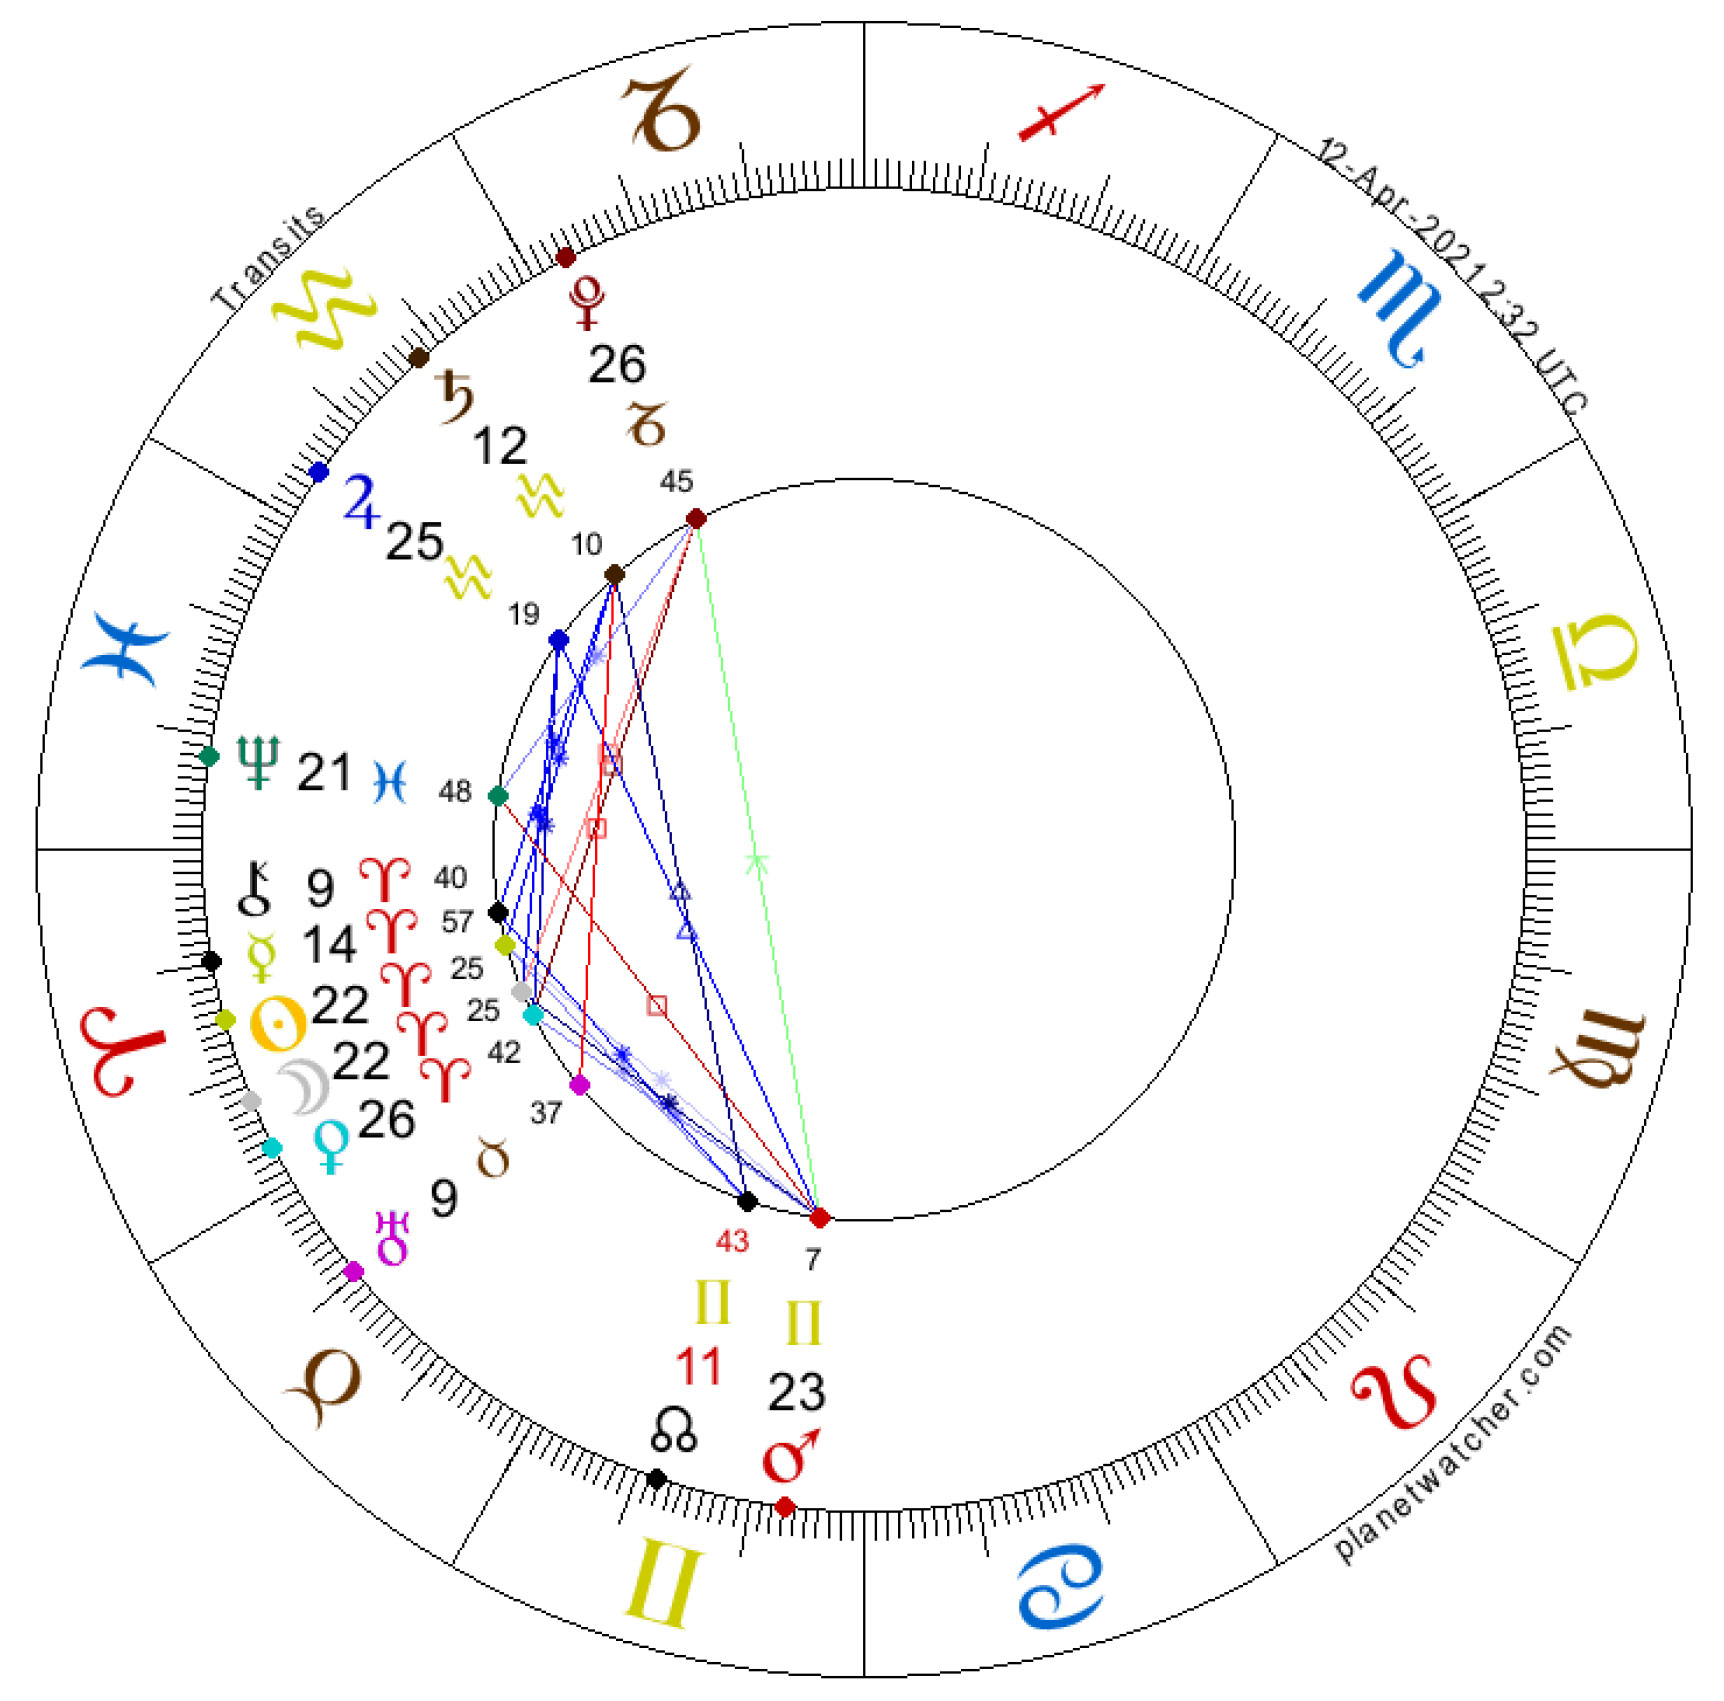 New Moon in Aries, April 12, 2021